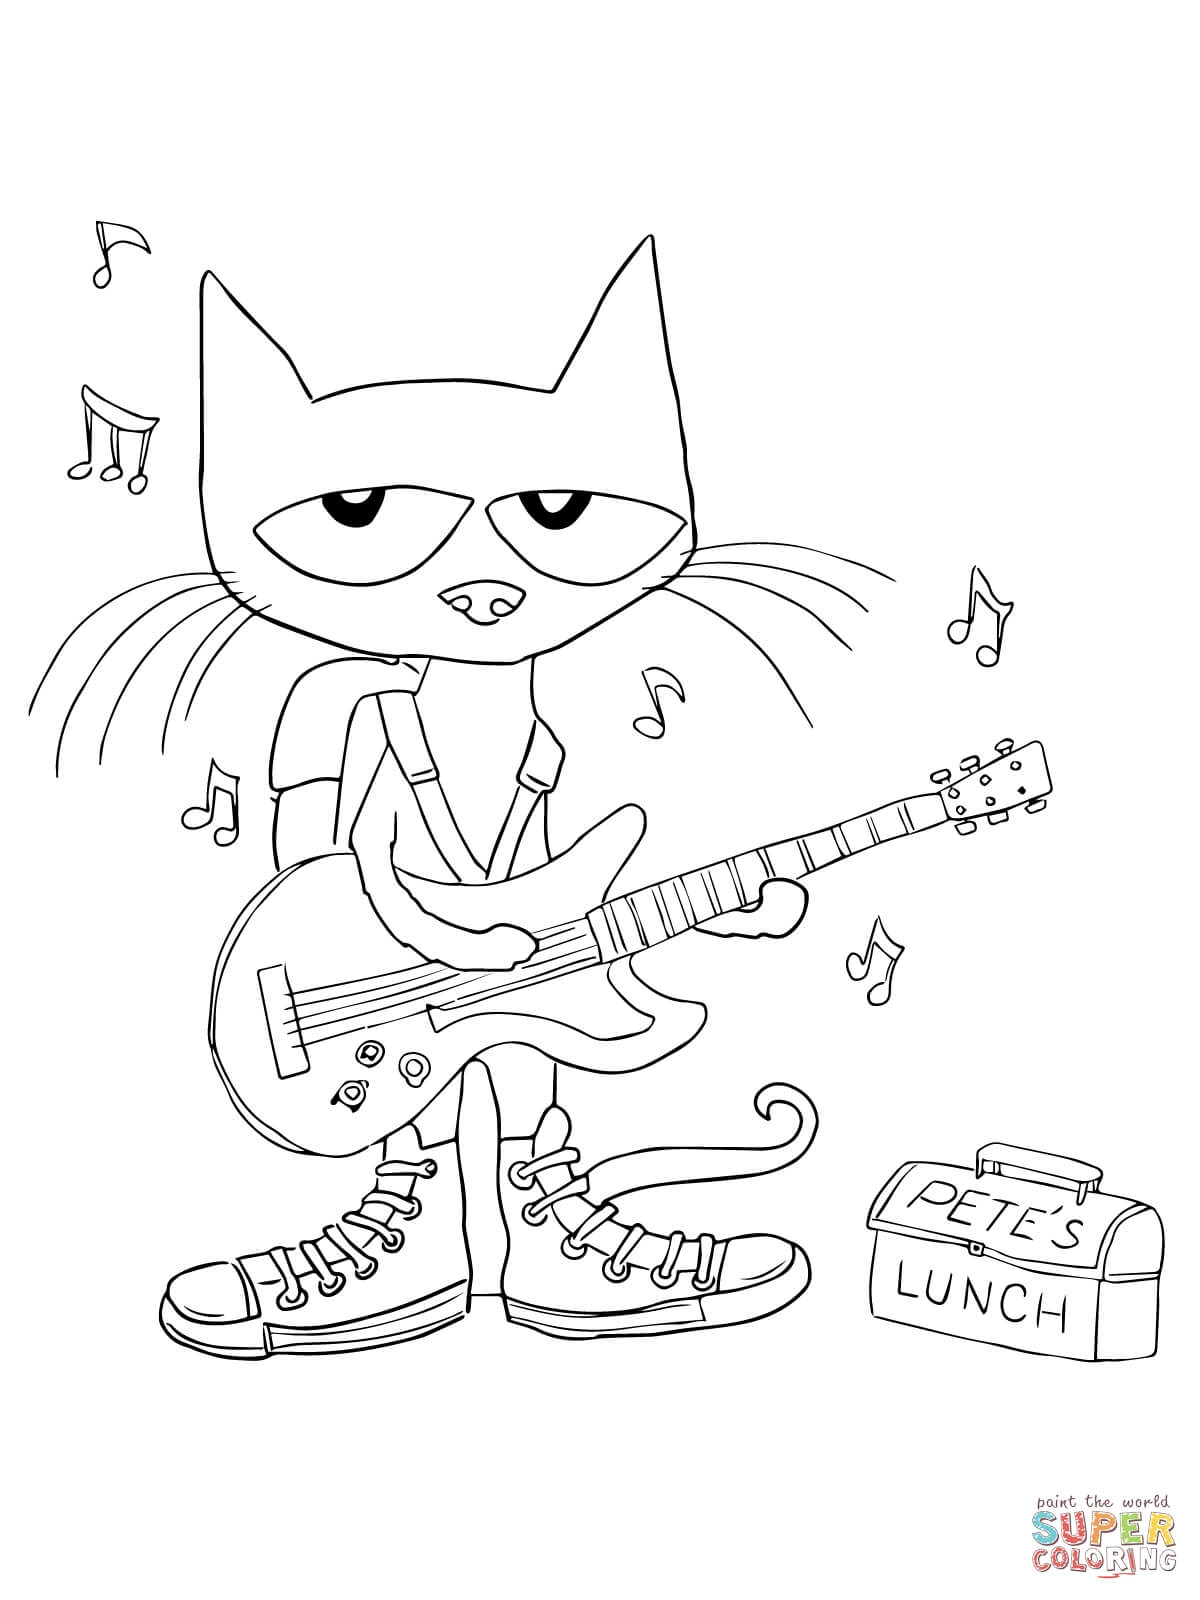 pete the cat coloring page - pete the cat coloring pages pet sketch templates